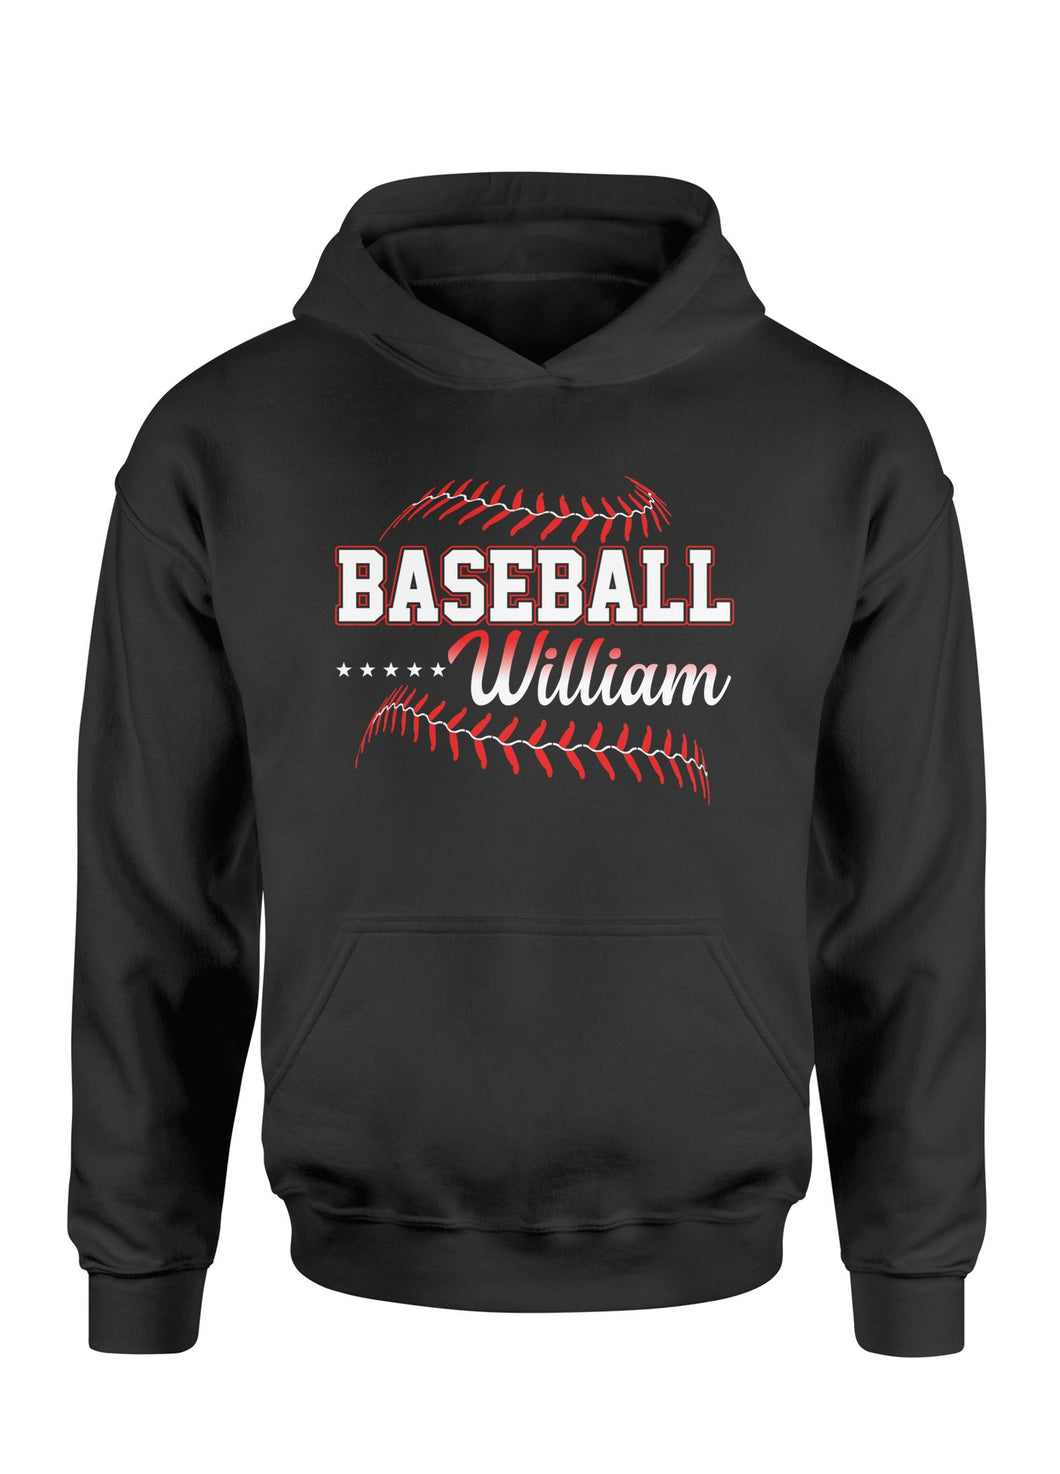 Personalized baseball shirt and hoodie for men and women gift